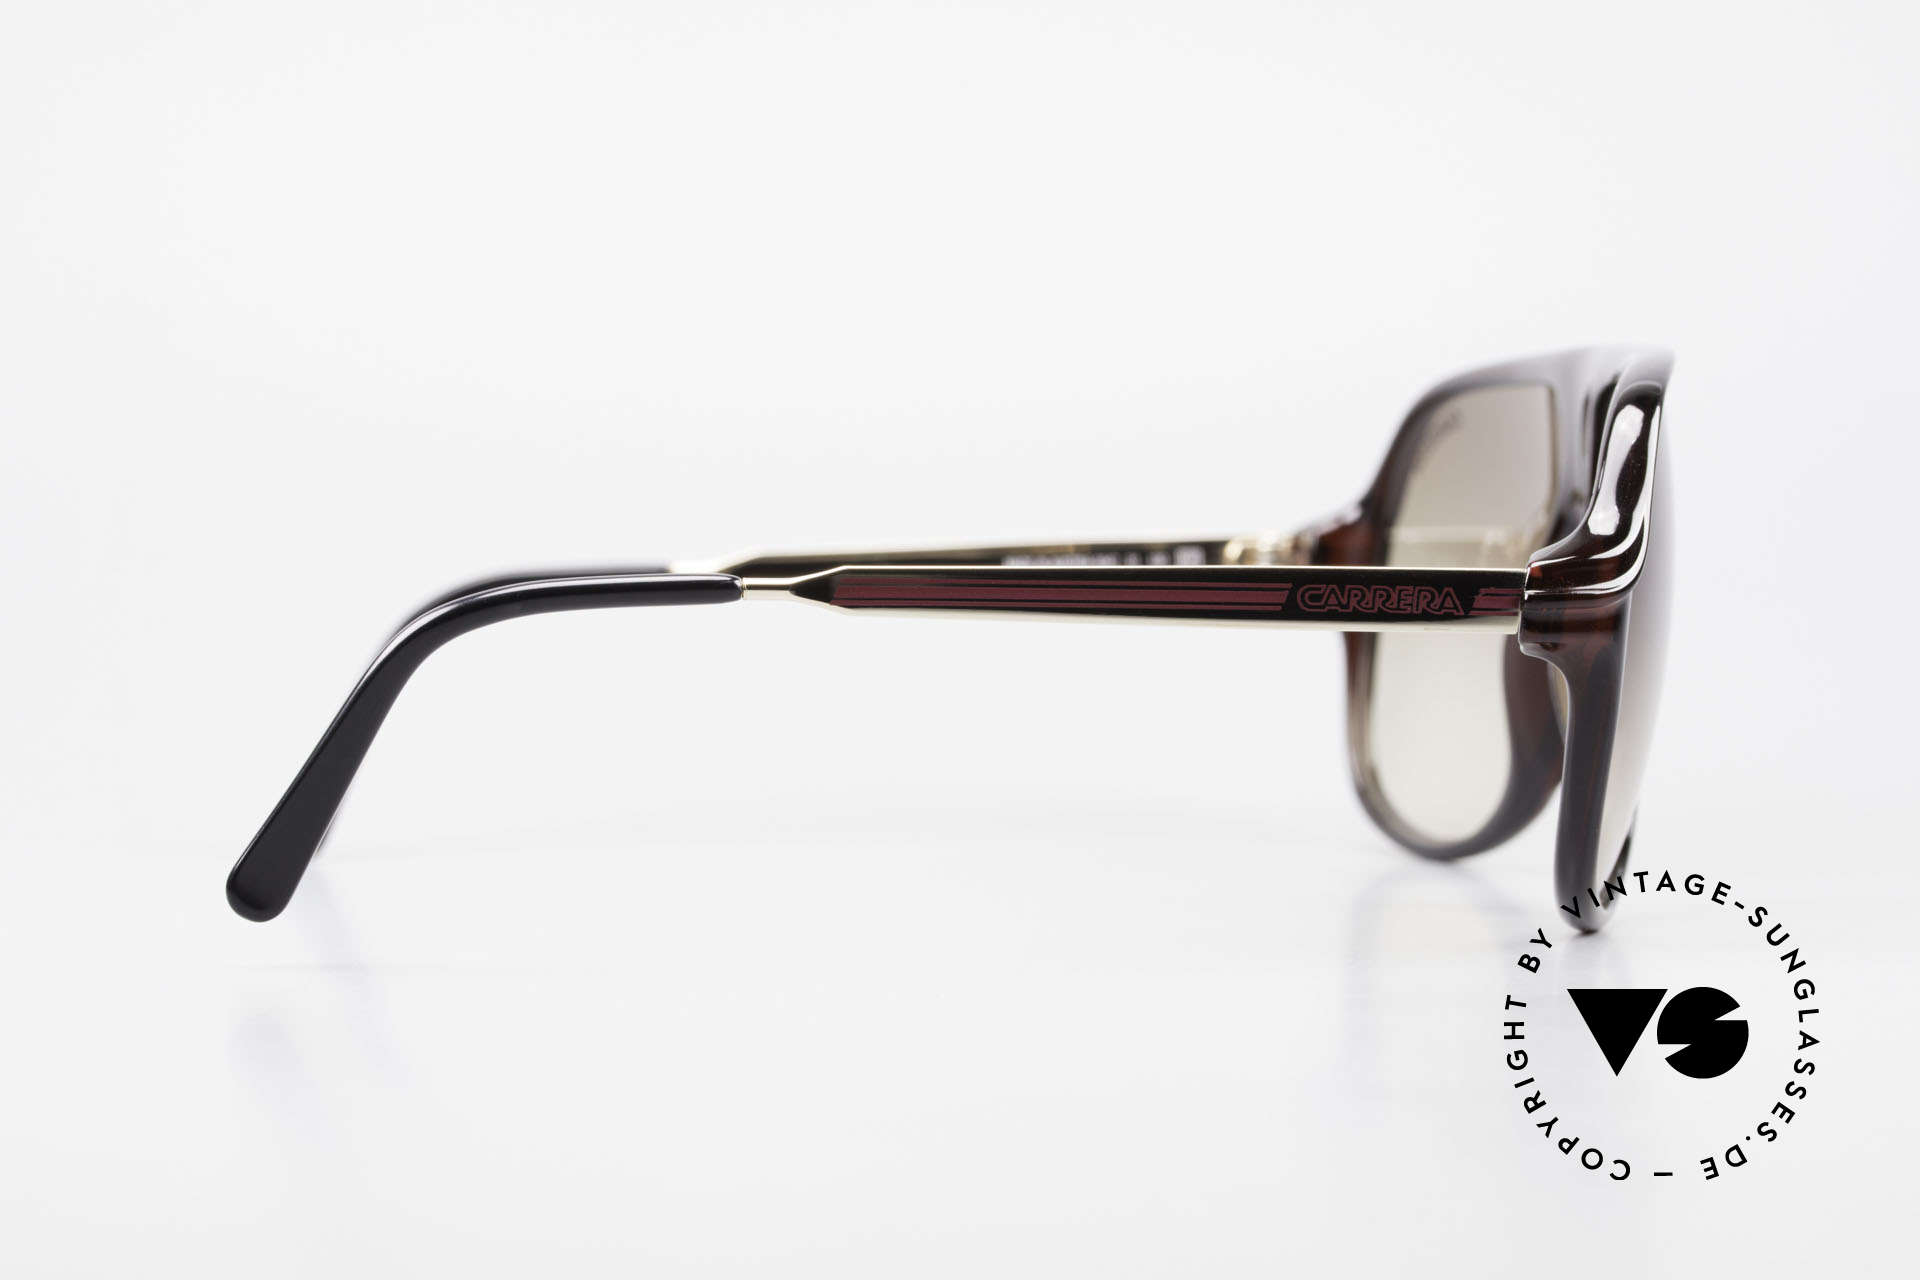 Carrera 5547 80's Vintage Shades No Retro, NO RETRO sunglasses, but a rare 35 years old Original, Made for Men